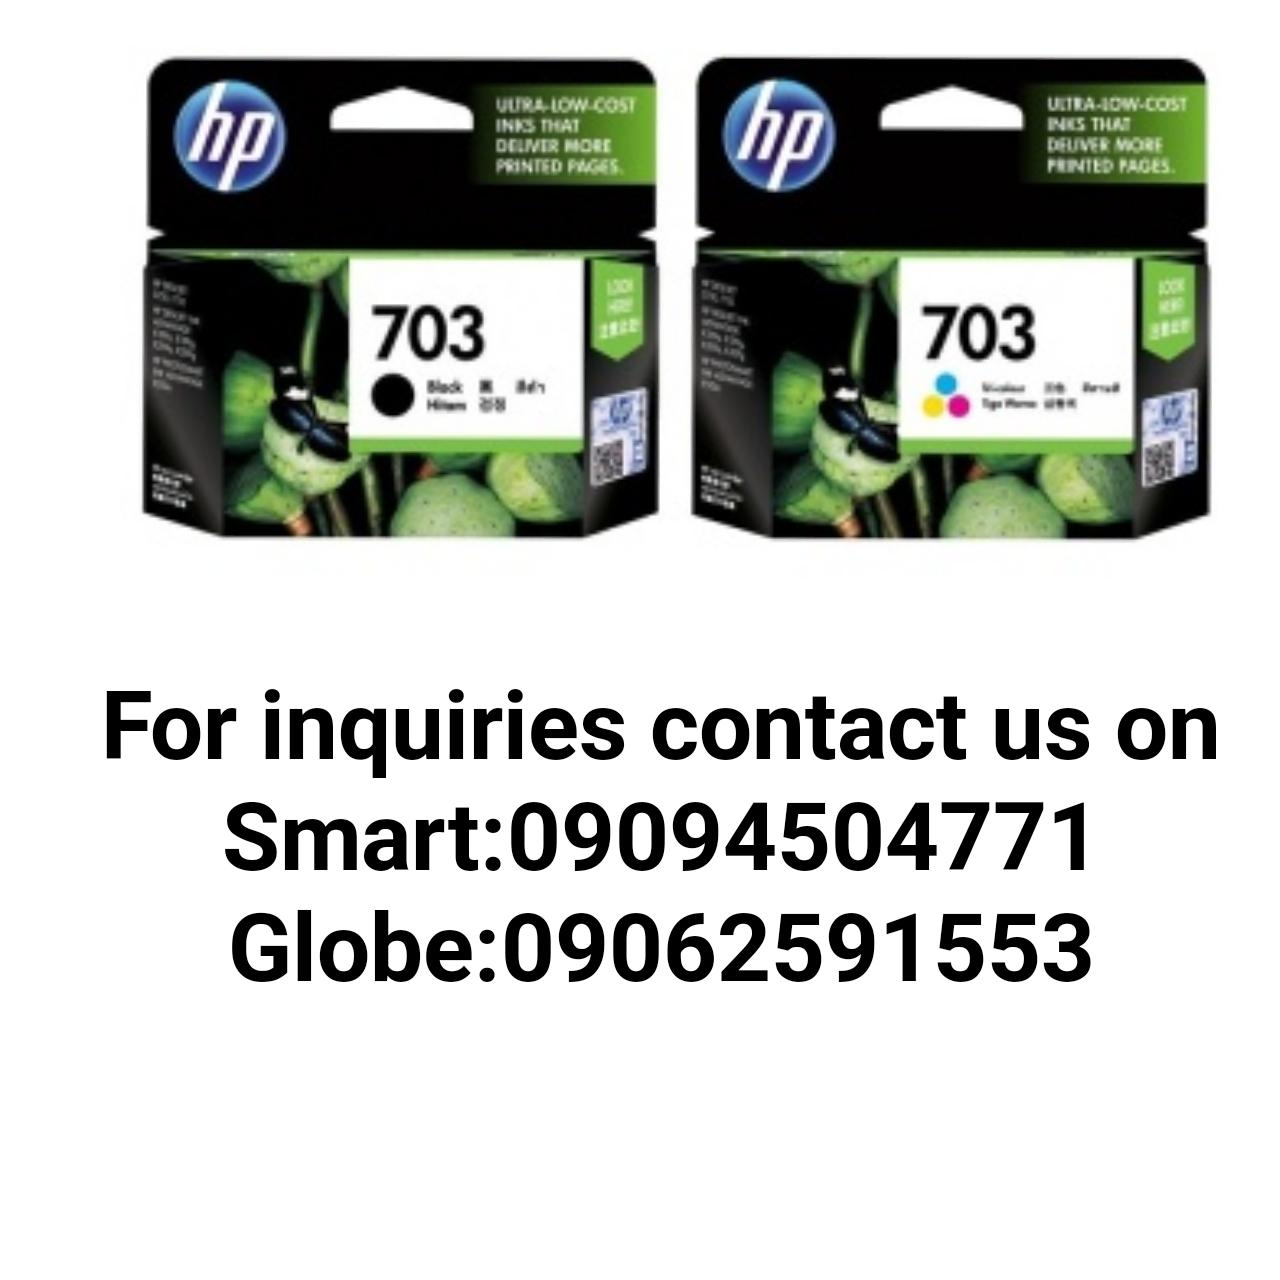 Hp 703 Black And Tri Color Ink Cartridge Pasay Philippines Buy 680 Original Advantage 400 Php